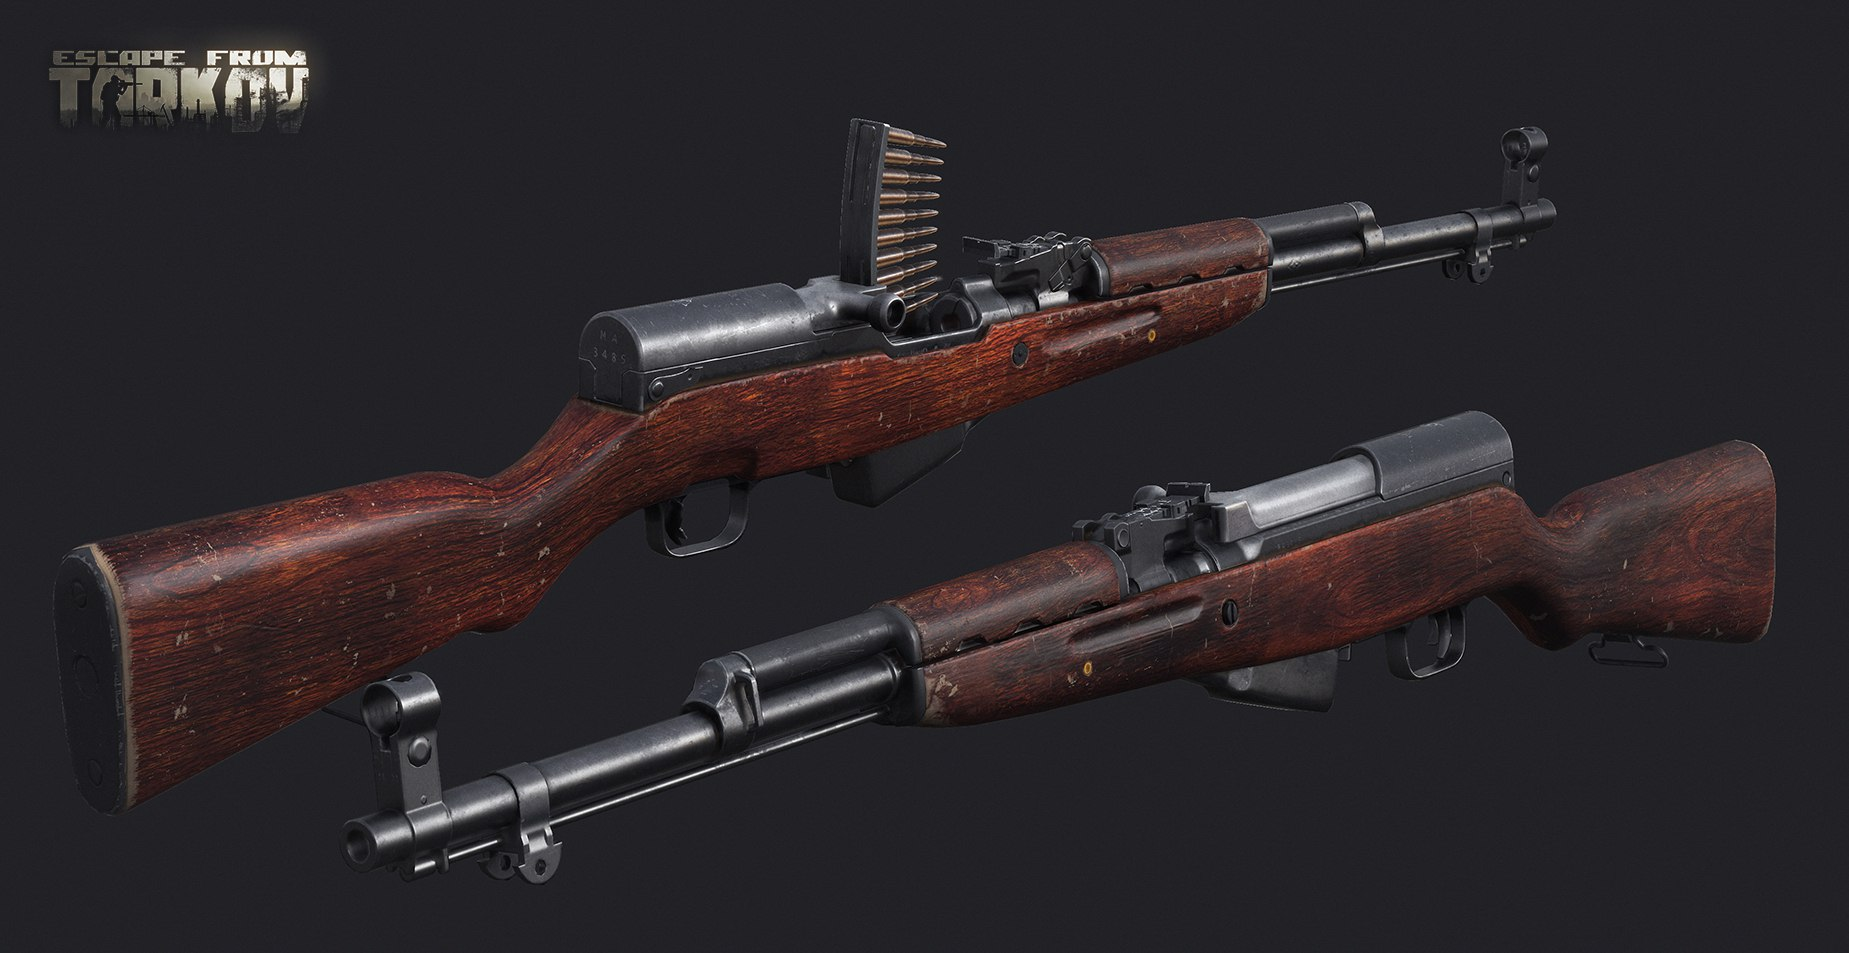 SKS - Weapons department - Escape from Tarkov Forum